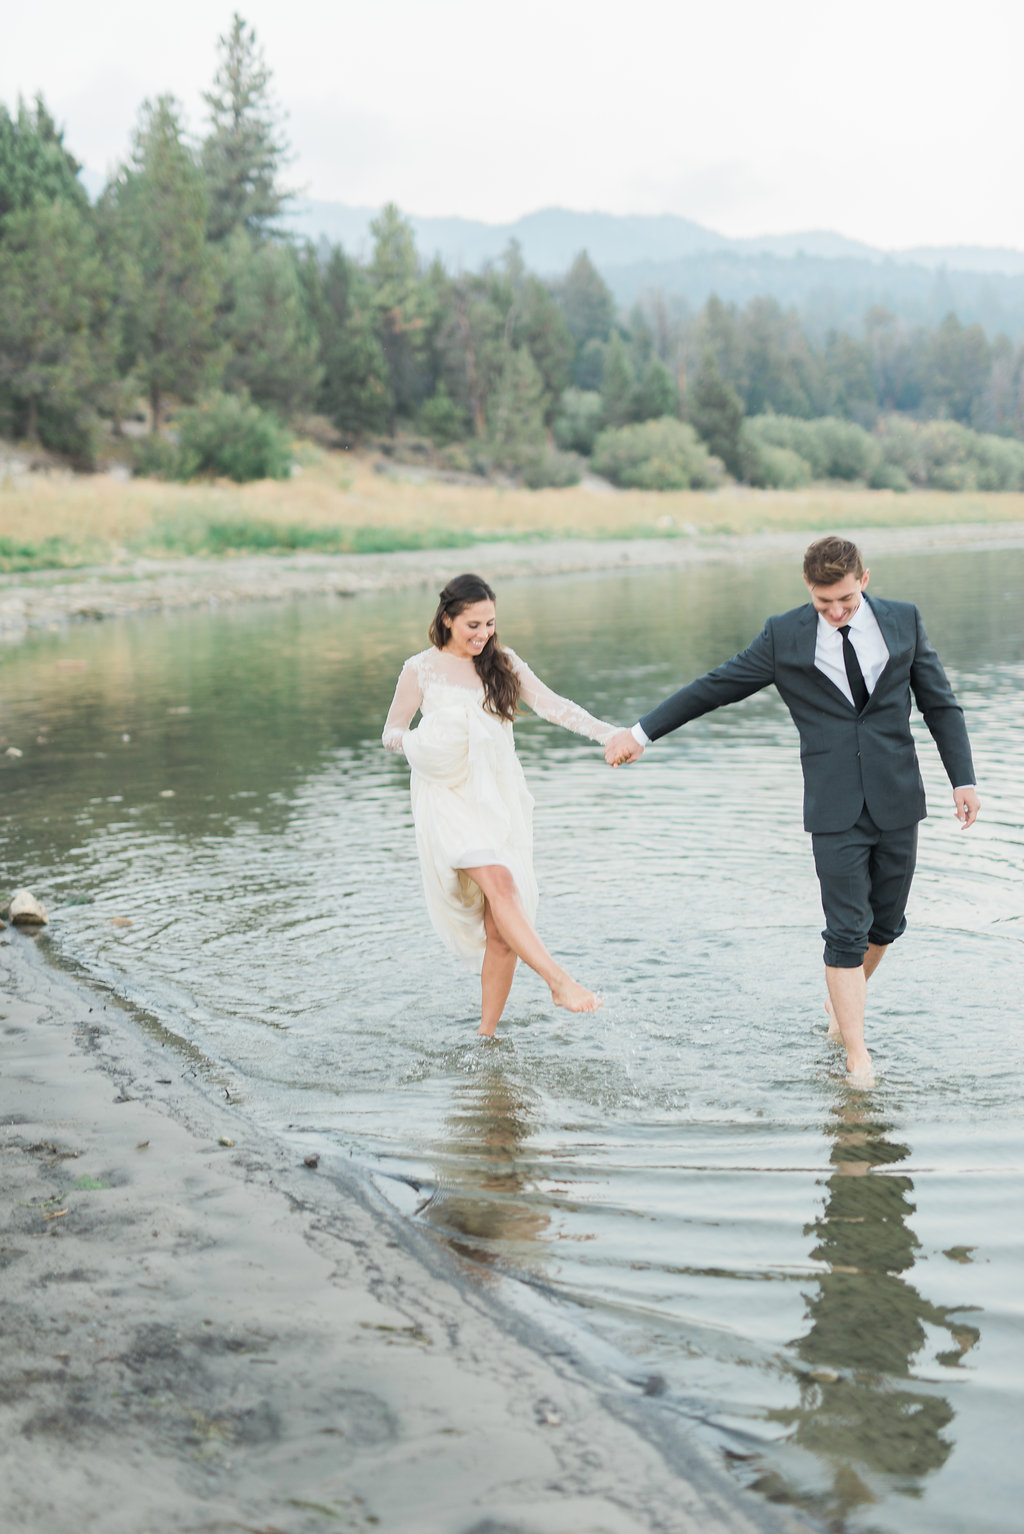 Big Bear Lakeside California Wedding | Shotgunning for Love Letters - Bride and Groom Playful Posing